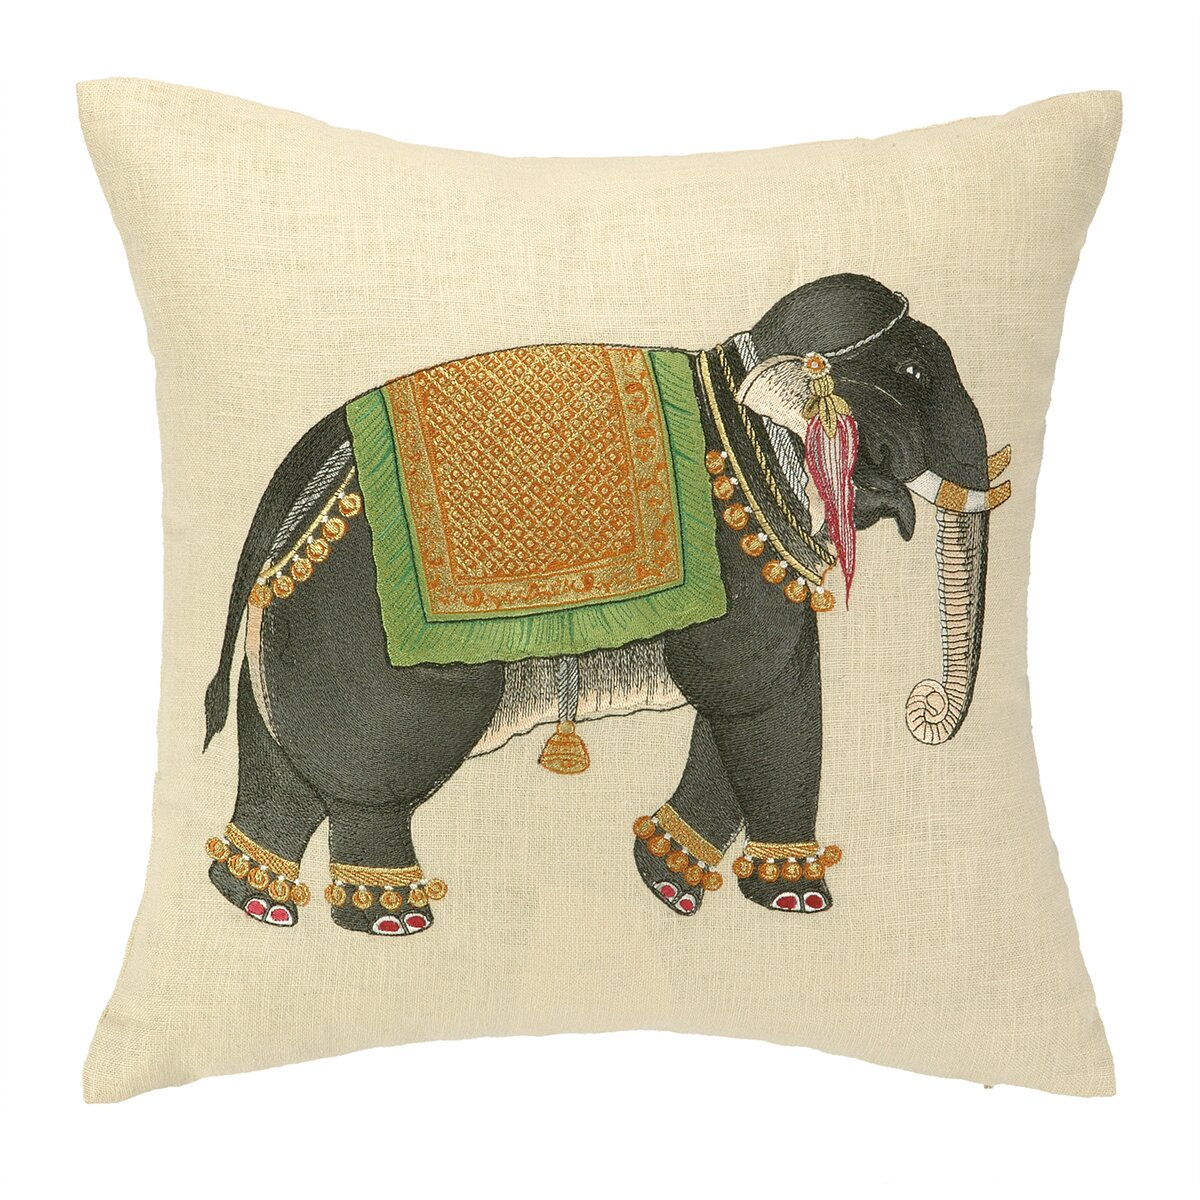 Decorative Linen Pillows : D.L. Rhein Mumbai Elephant Embroidered Decorative Linen Throw Pillow & Reviews Wayfair